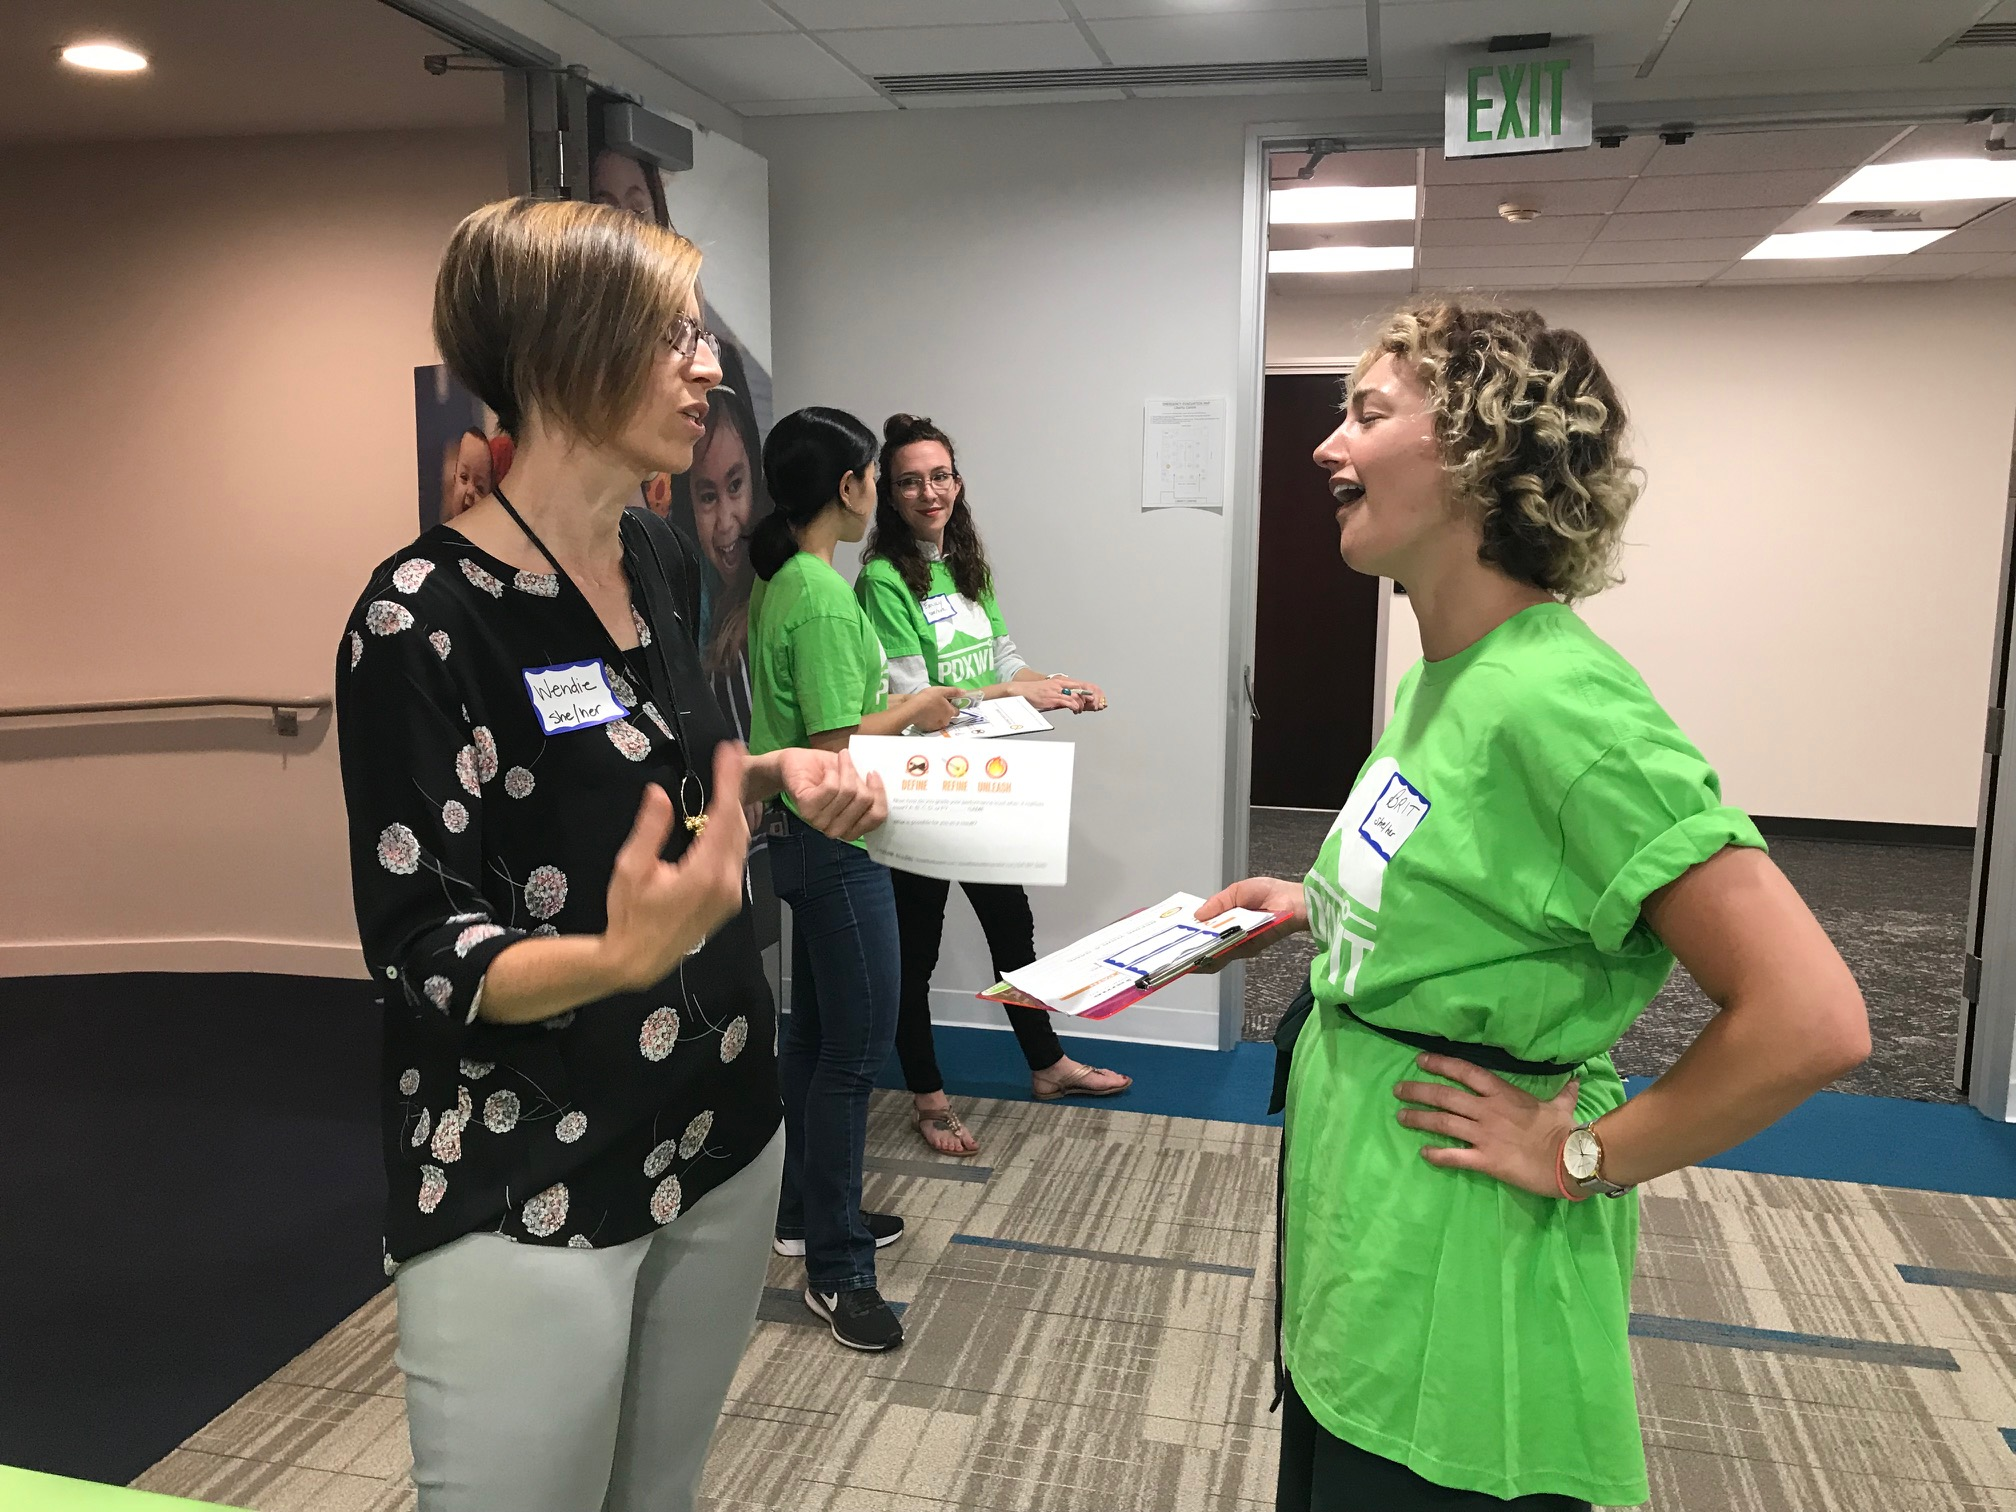 Attendee chatting with volunteer.jpg